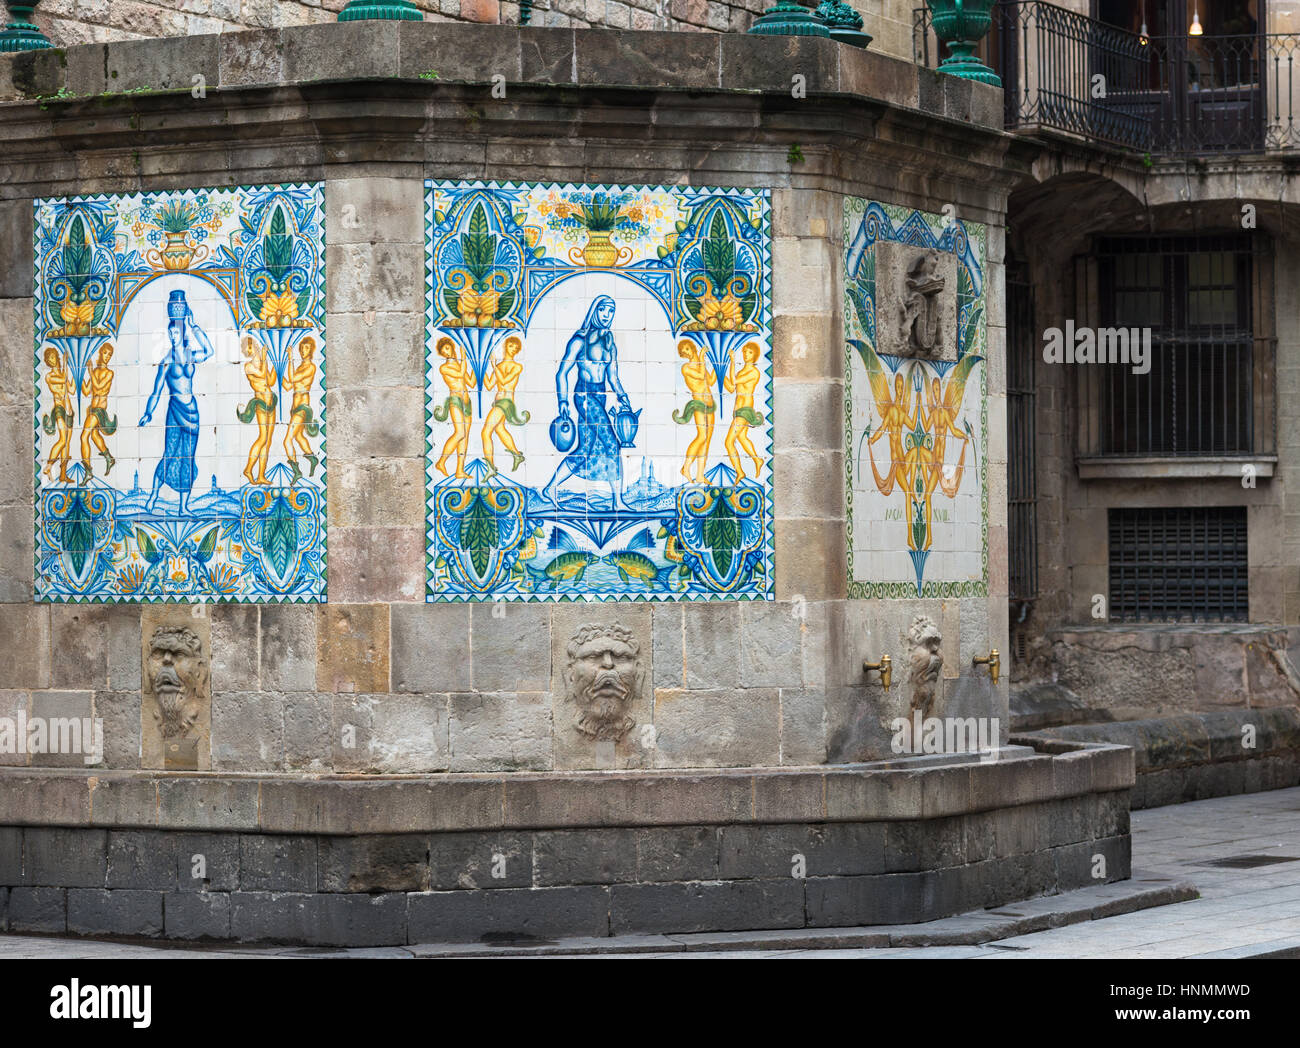 Spain, Catalonia, Barcelona, Gothic Quarter, fountain of Santa Anna. Stock Photo